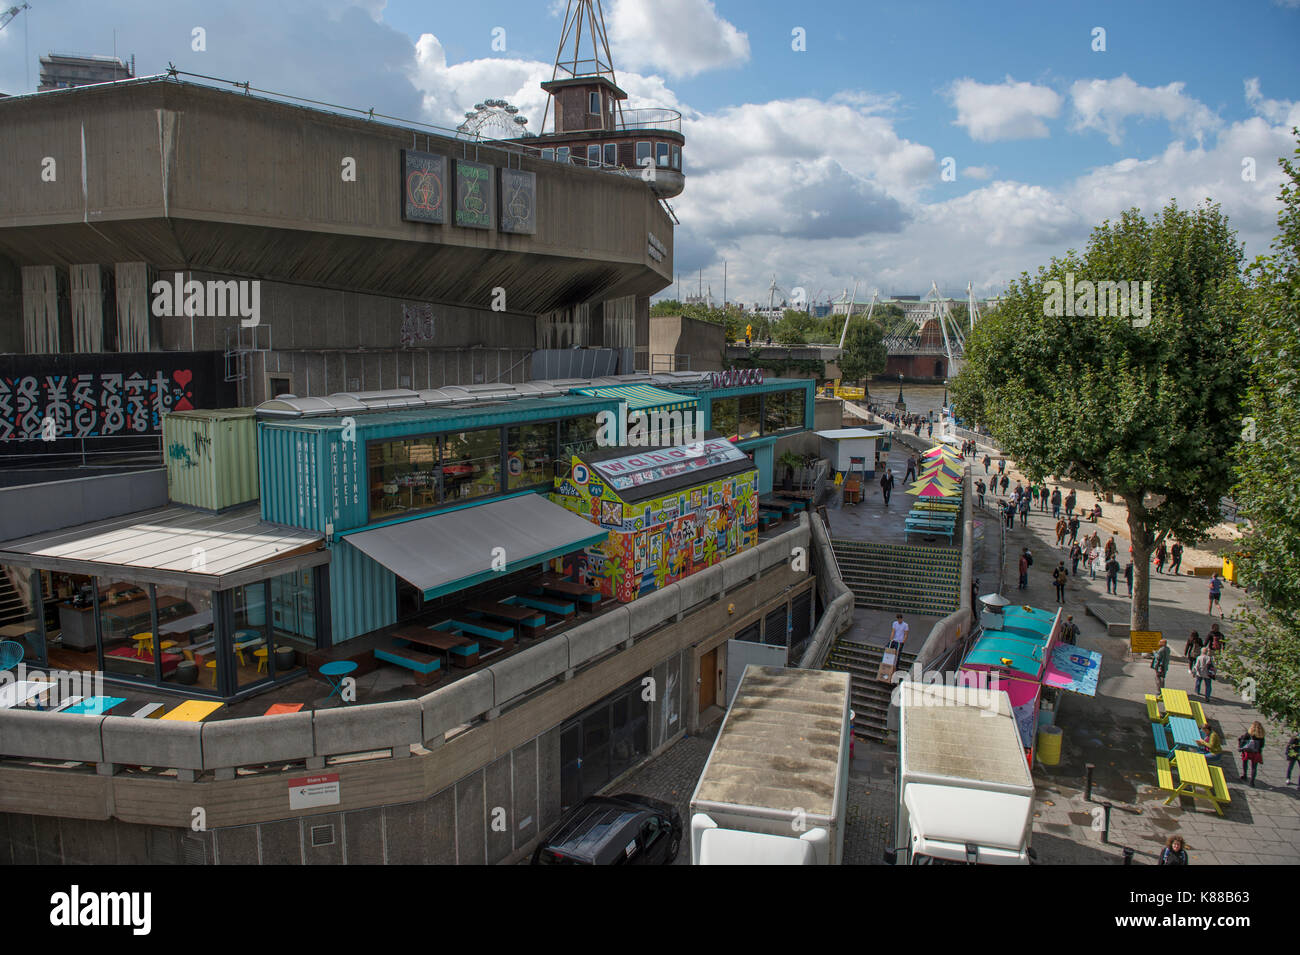 BFI Southbank seen from Waterloo Bridge, London, UK - Stock Image